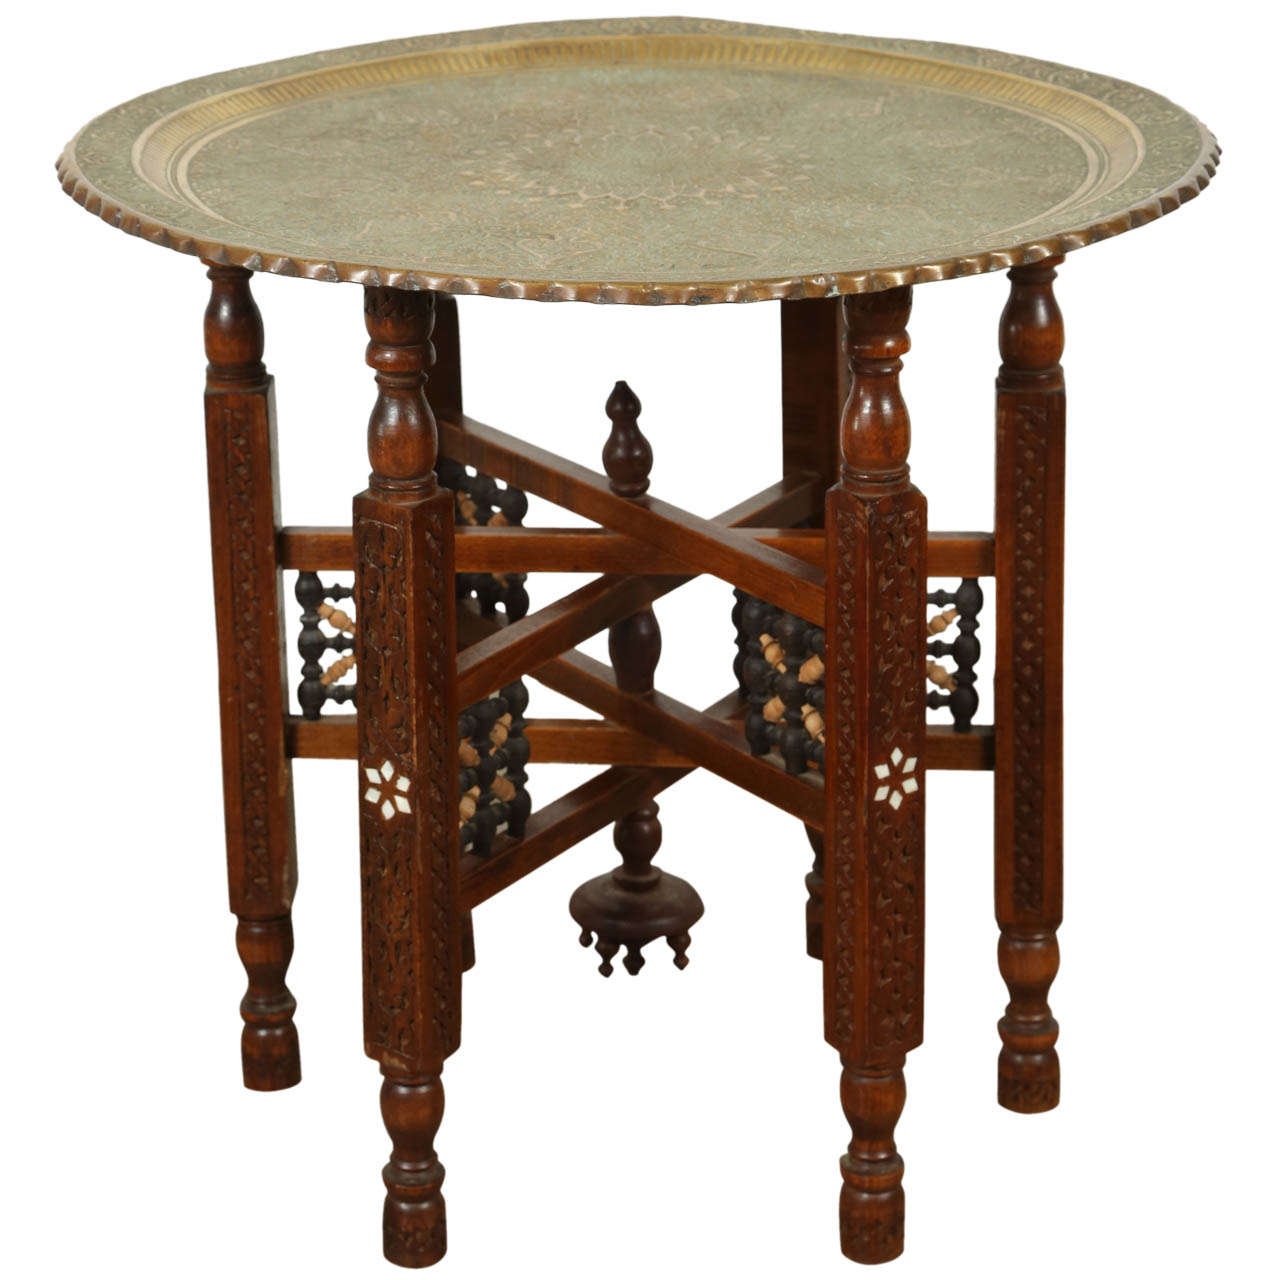 Antique persian brass tray side table at 1stdibs for Tray side table